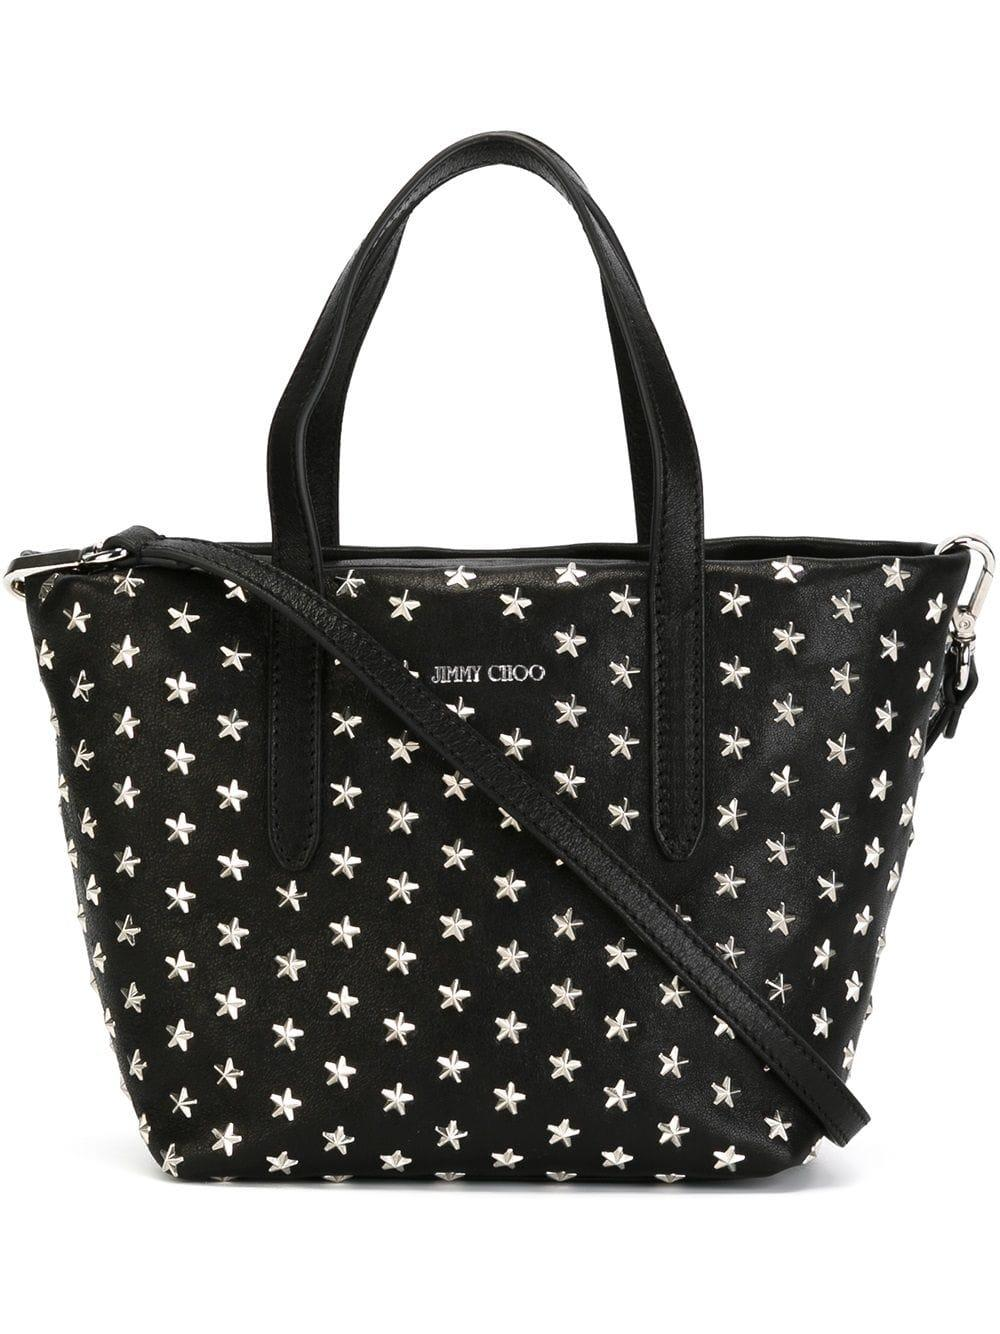 Jimmy Choo Mini Sara Tote Bag in Black